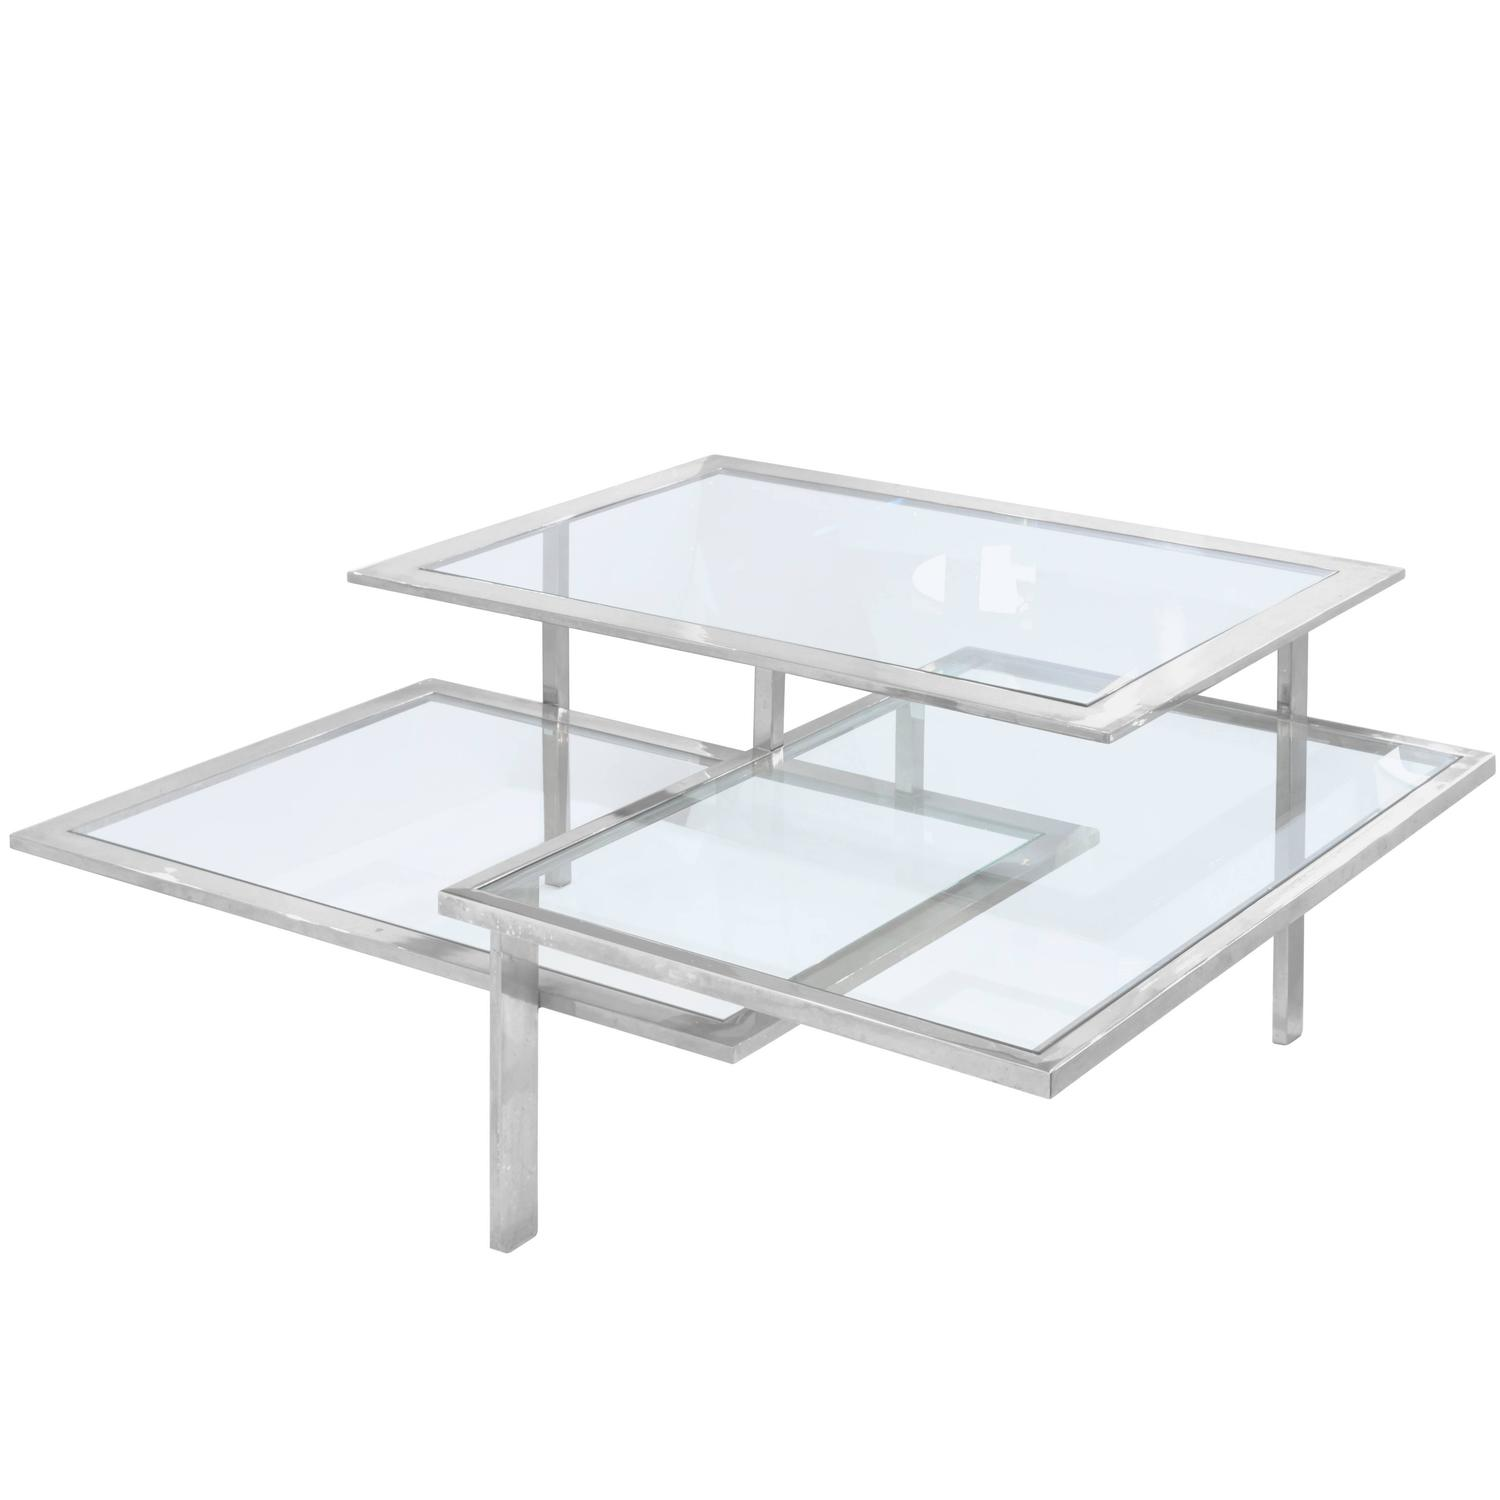 Chic Three Level Architectural Coffee Table in Chrome and Glass at